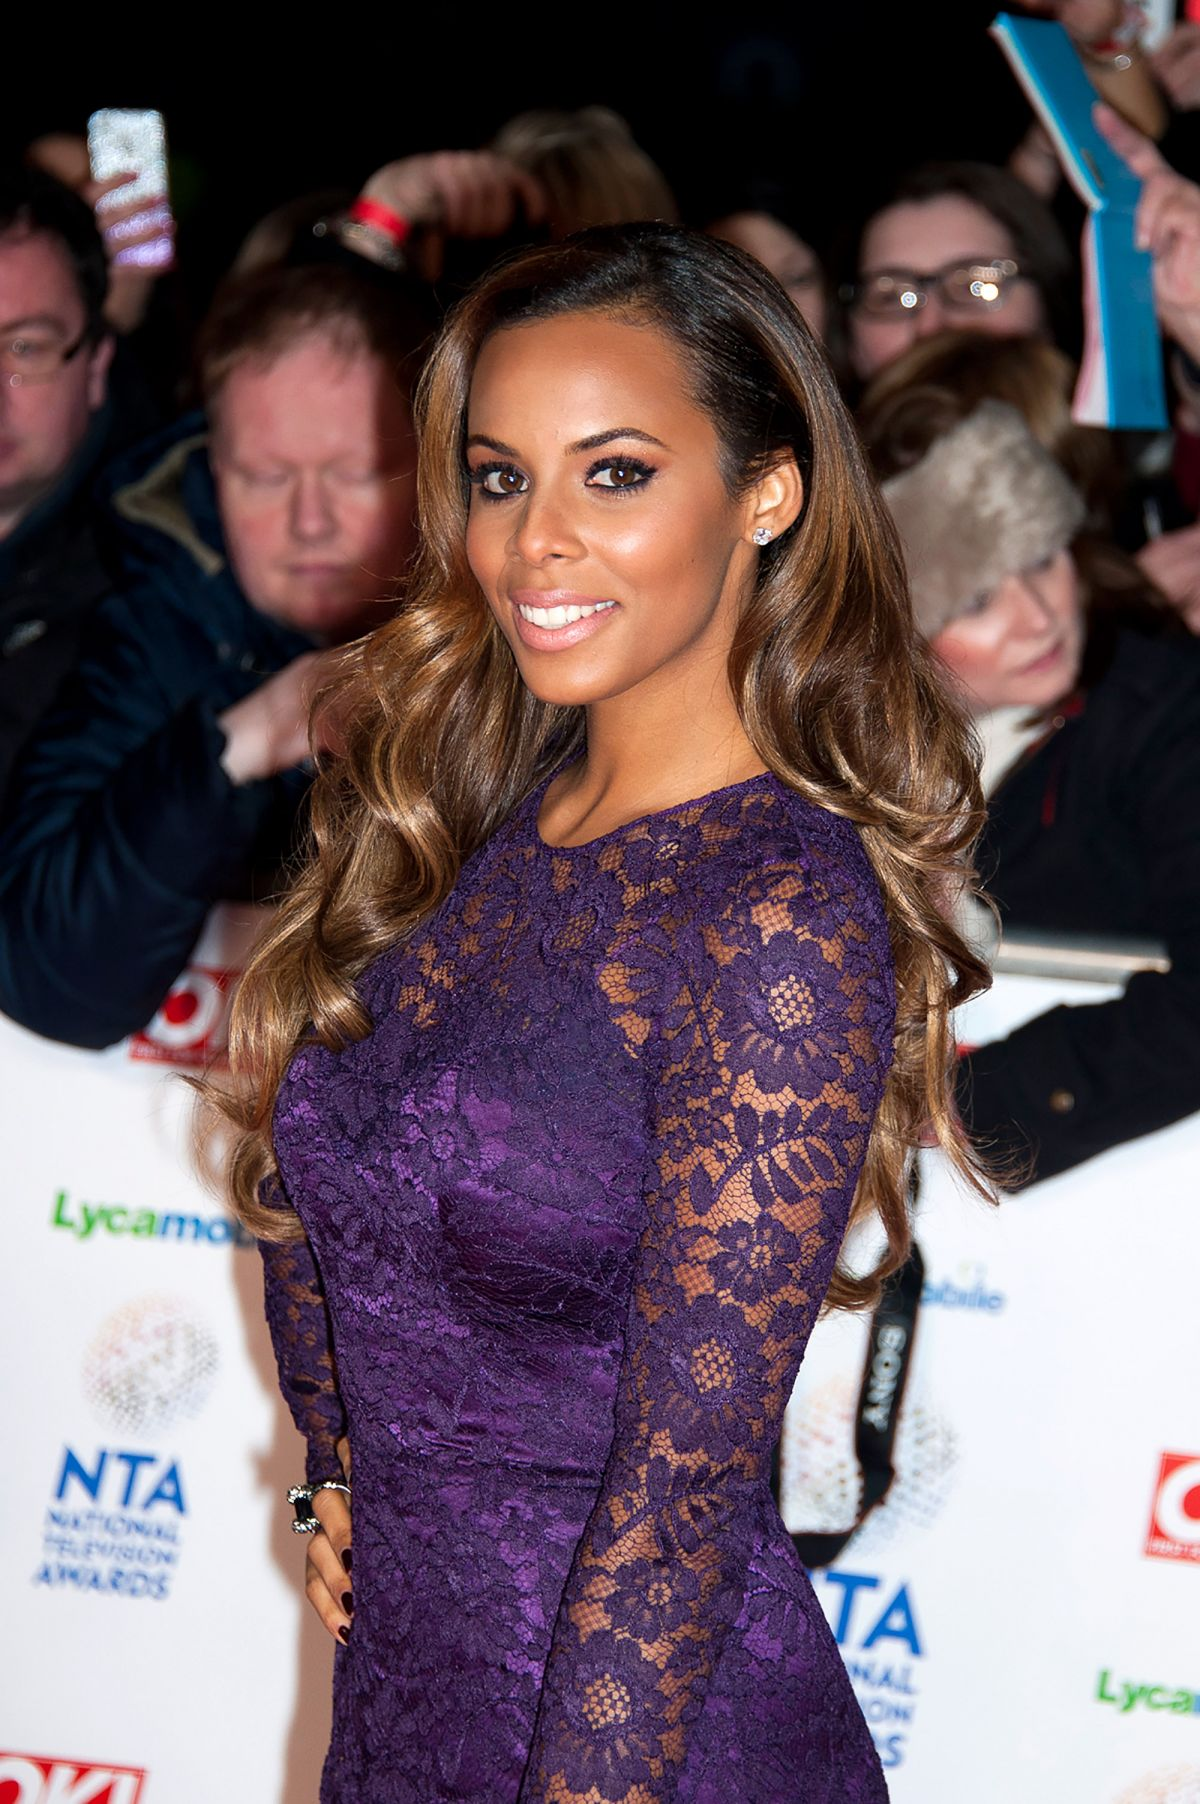 ROCHELLE WISEMAN at 2014 National Television Awards in London